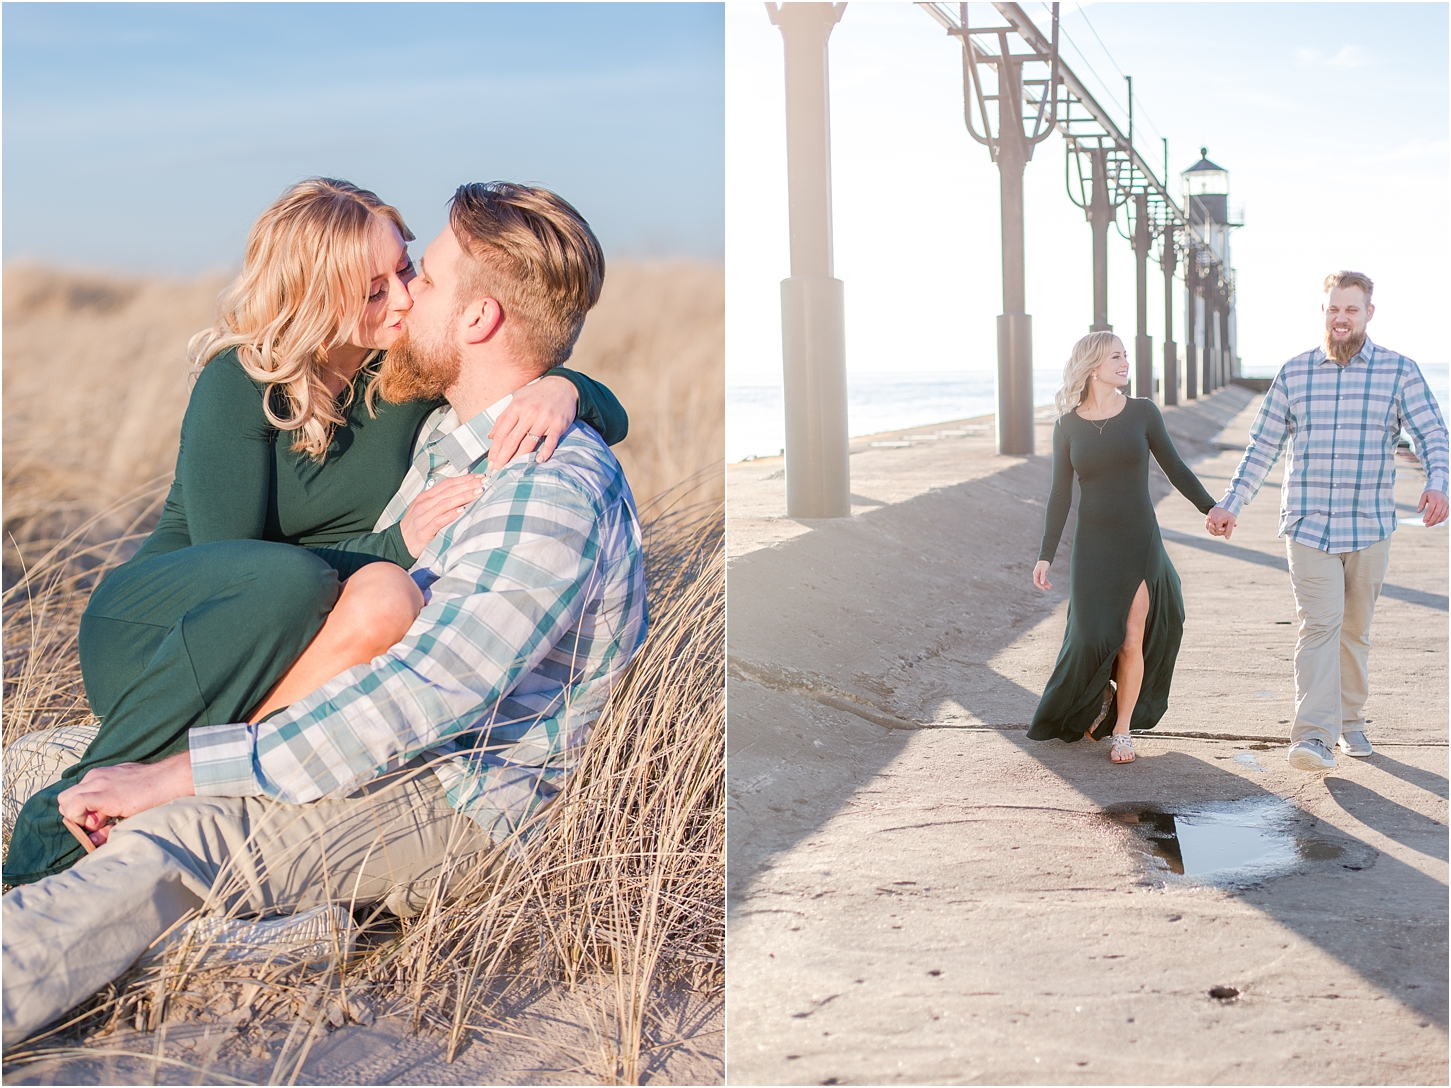 romantic-sunset-beach-engagement-photos-at-silver-beach-in-saint-joseph-mi-by-courtney-carolyn-photography_0005.jpg